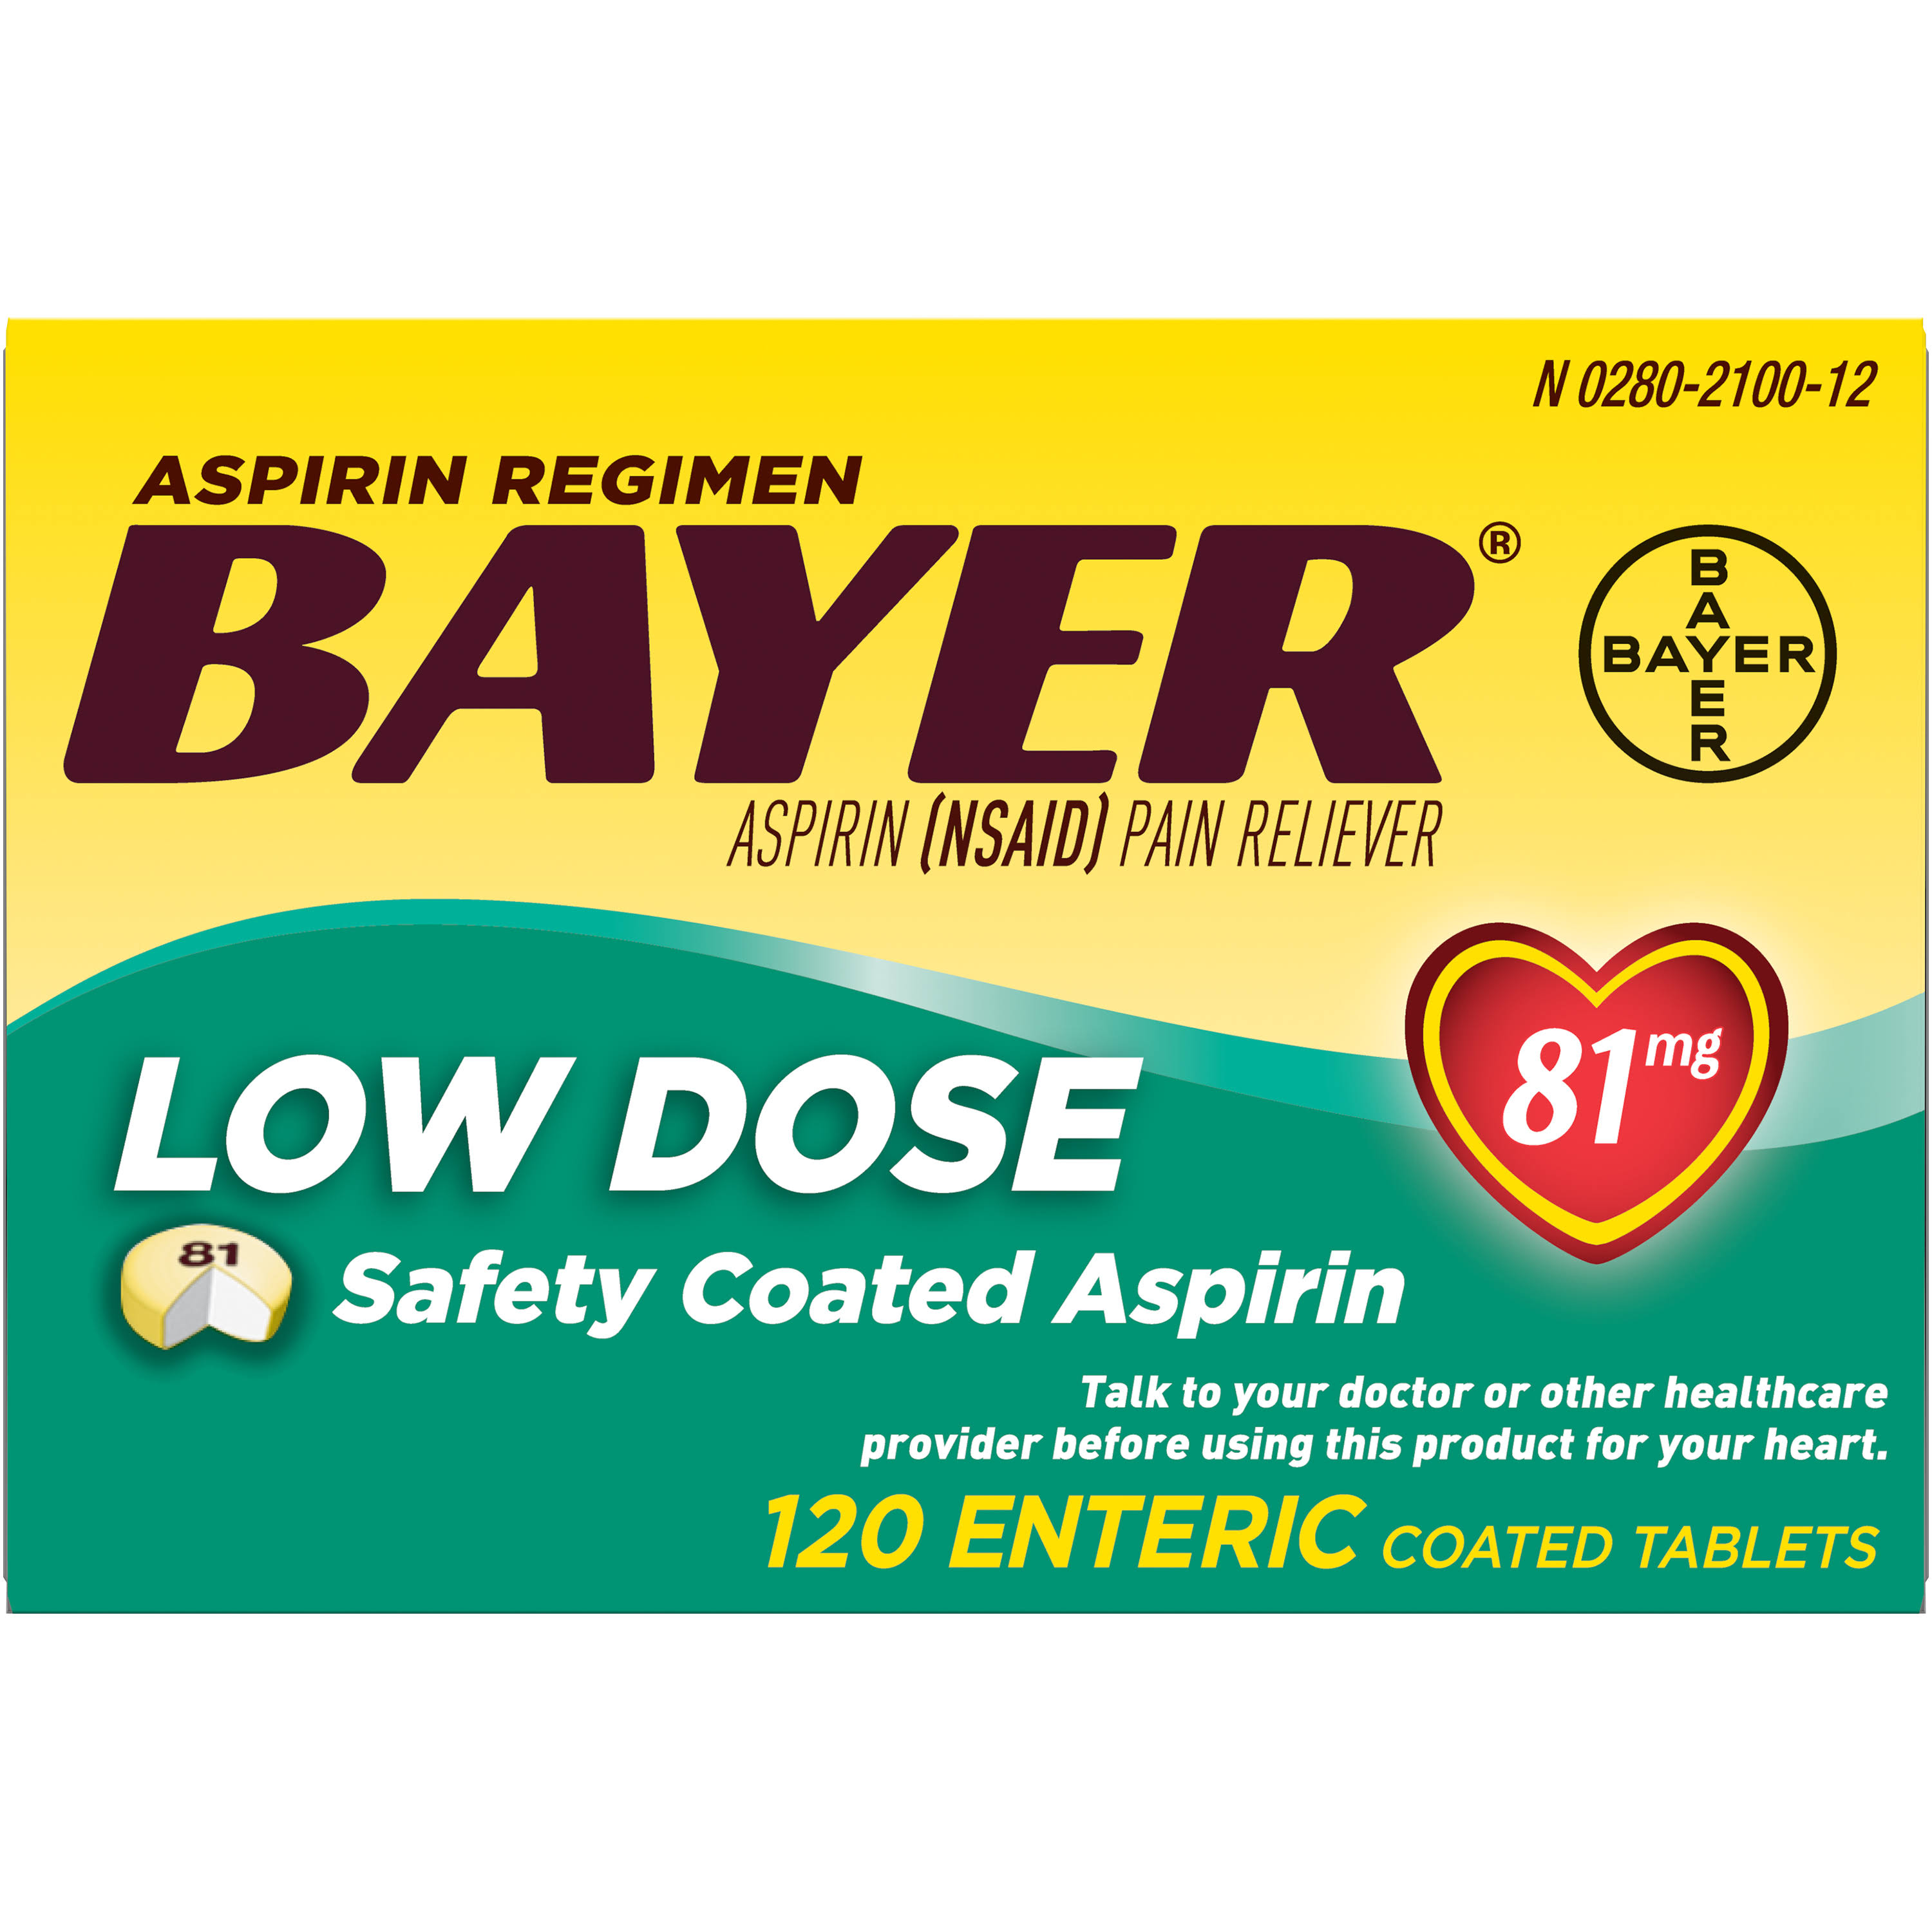 Bayer Aspirin Regimen Low Dose Safety Enteric Coated Tablets - 81mg, 120ct